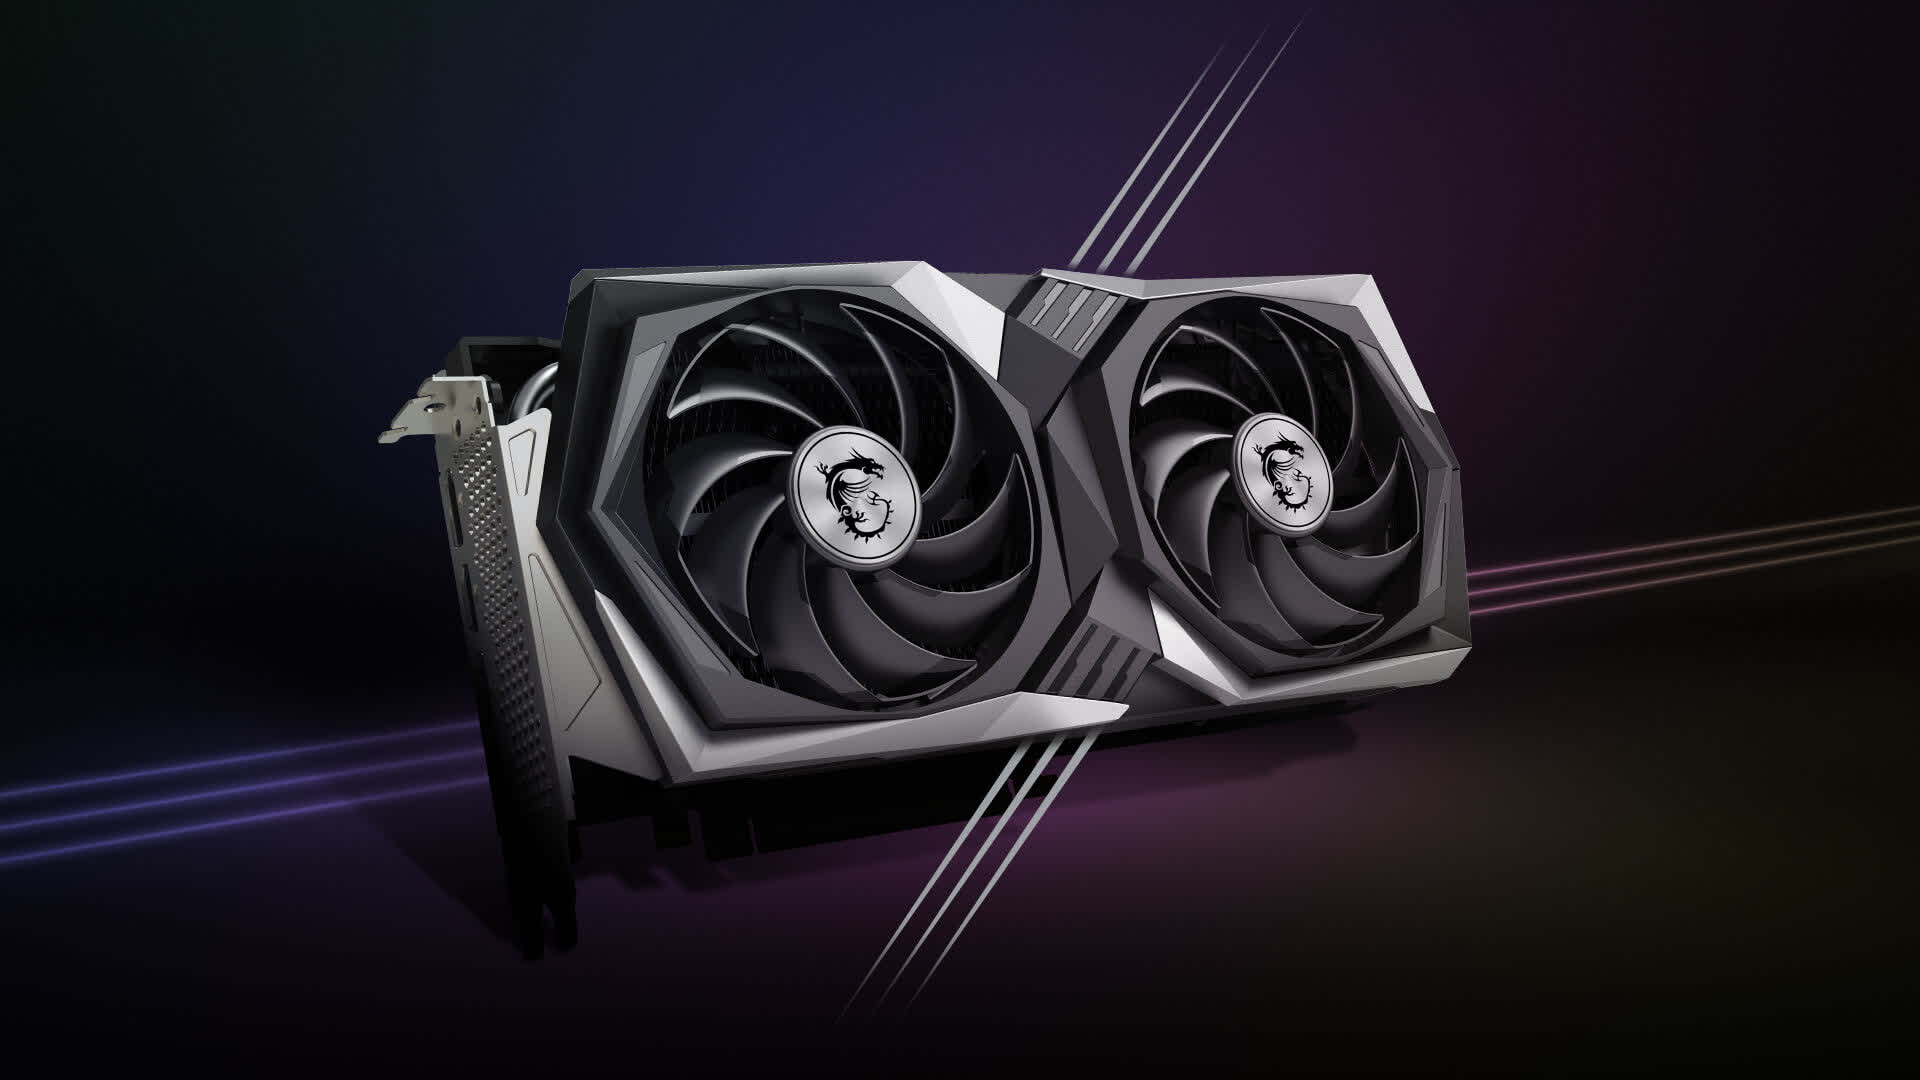 Newegg briefly listed the Radeon RX 6600 XT for $1,100 a few days early